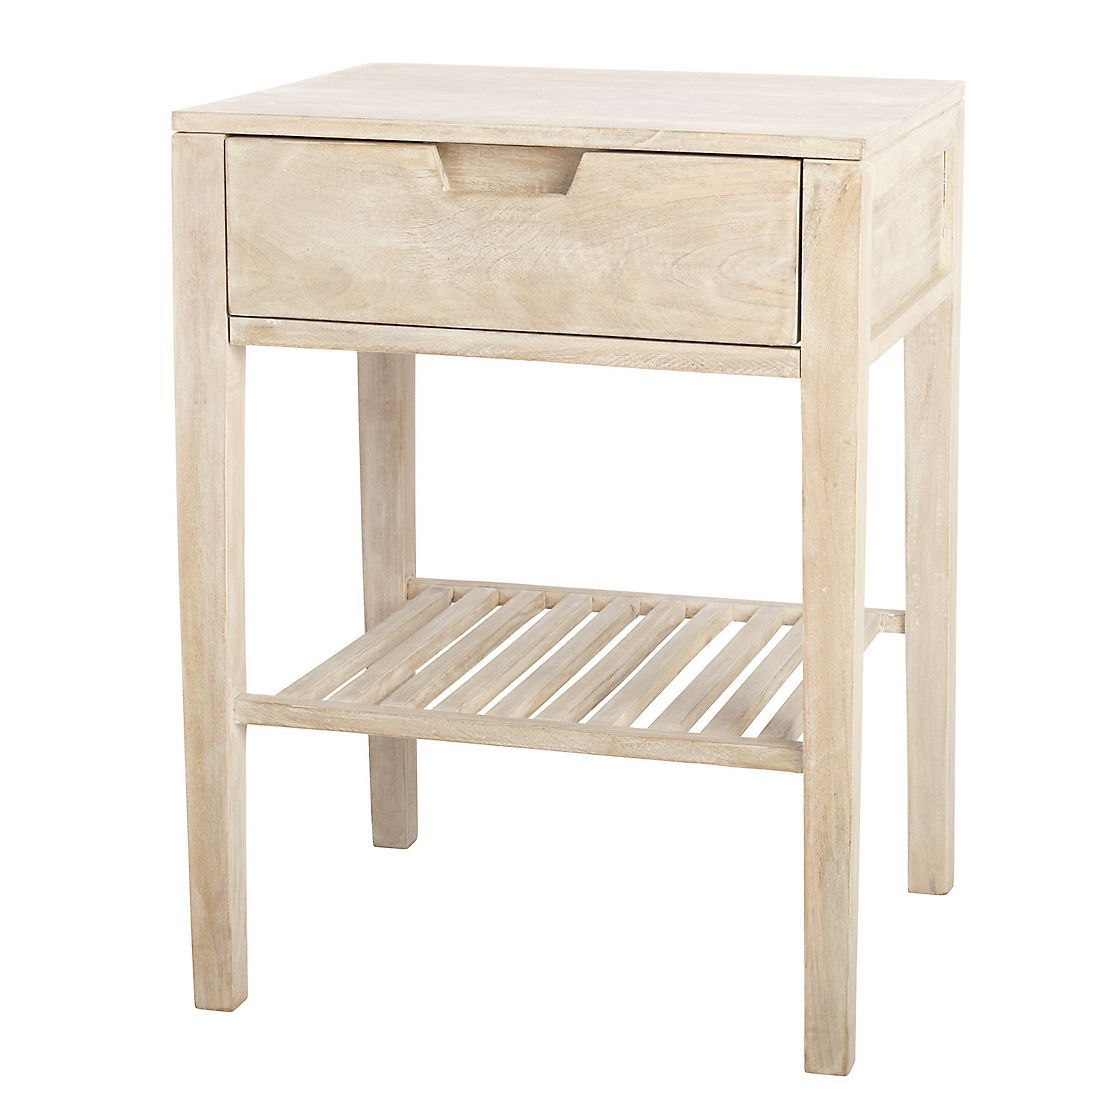 marvellous mango wood accent table manor unfinished carved tribal five tables square reclaimed white twist and below twisted oval rope pressed avani drum lani metal rustic round